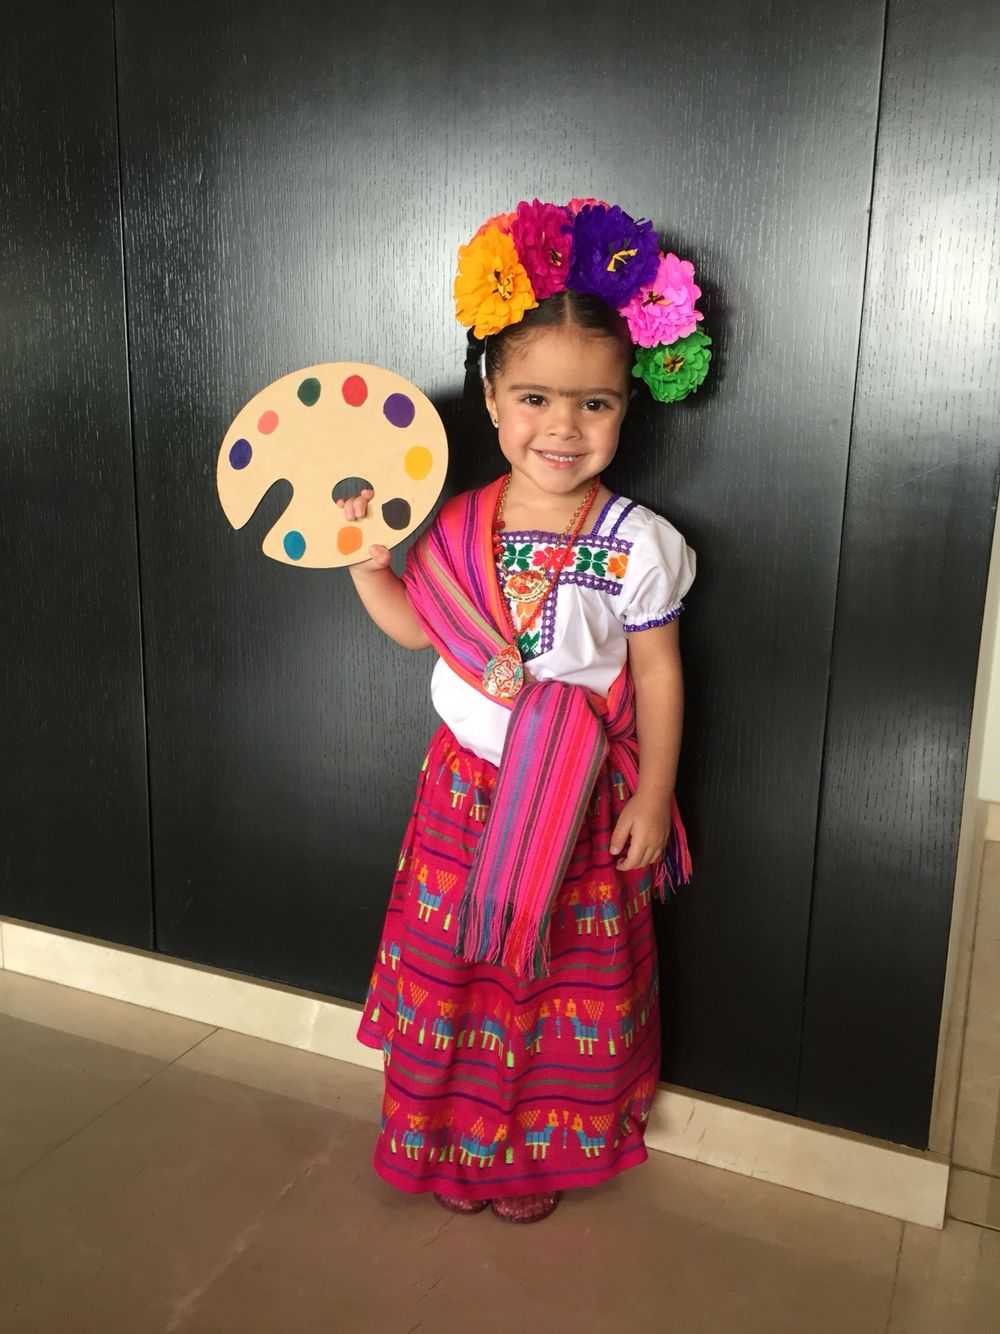 Frida Kalho Diy Halloween Costumes For Women Little Girl Costumes Girl Costumes